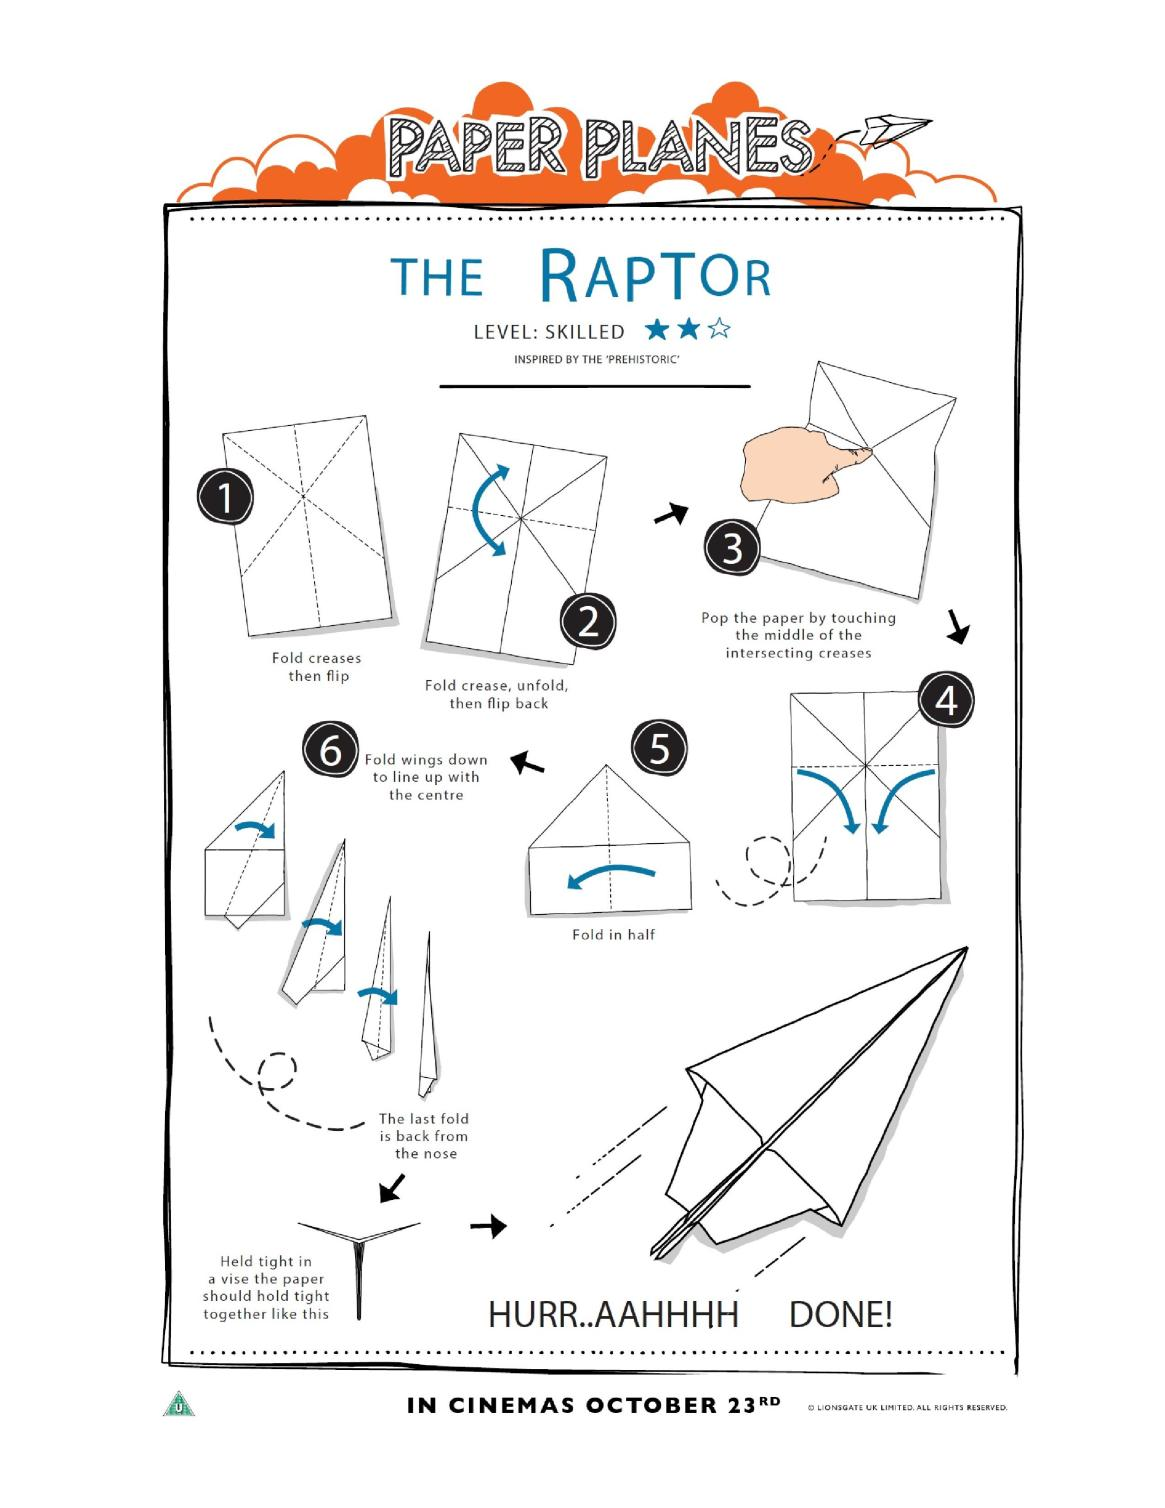 How to make an impressive paper plane. Folding instructions for the raptor - more impressive than the classic paper plane!